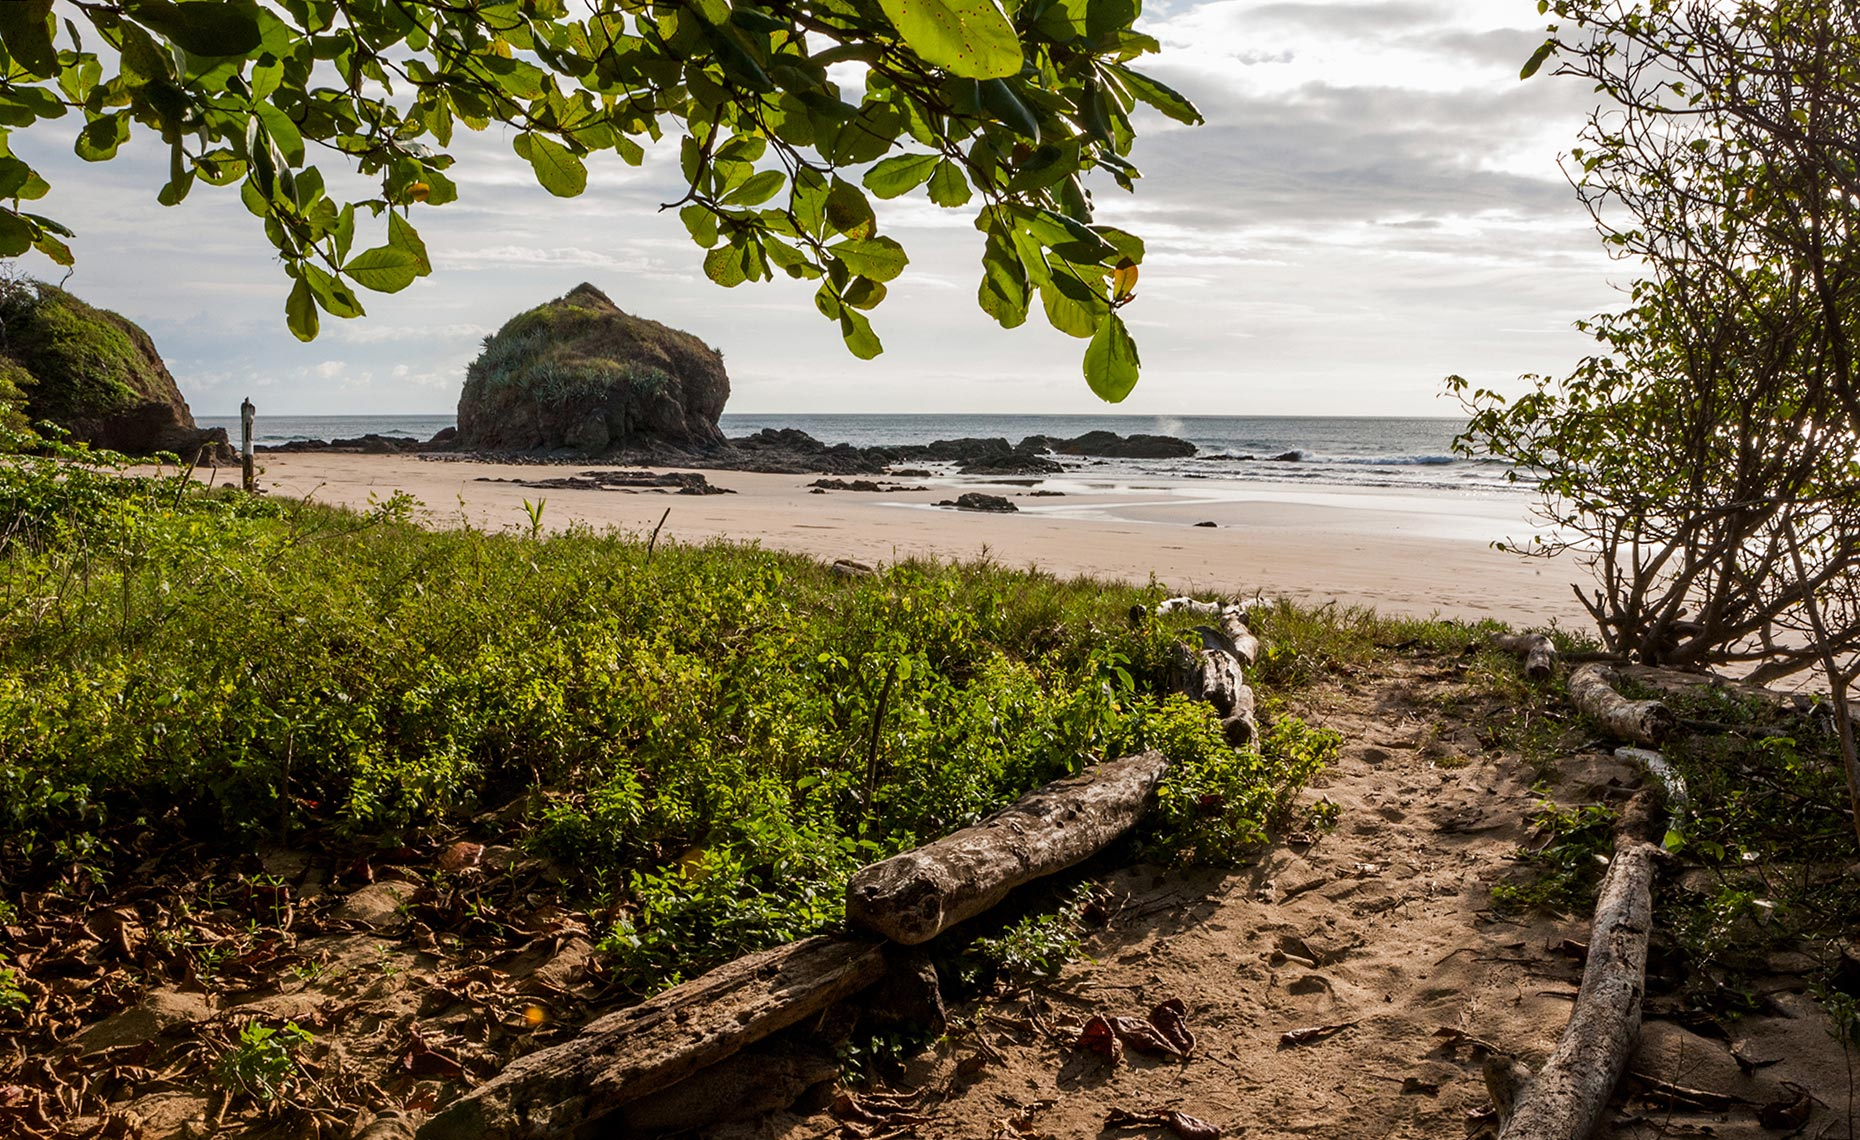 60_Playa_Grande_Costa_Rica_Environment_Landscape_Chris_Wellhausen_Photography.JPG